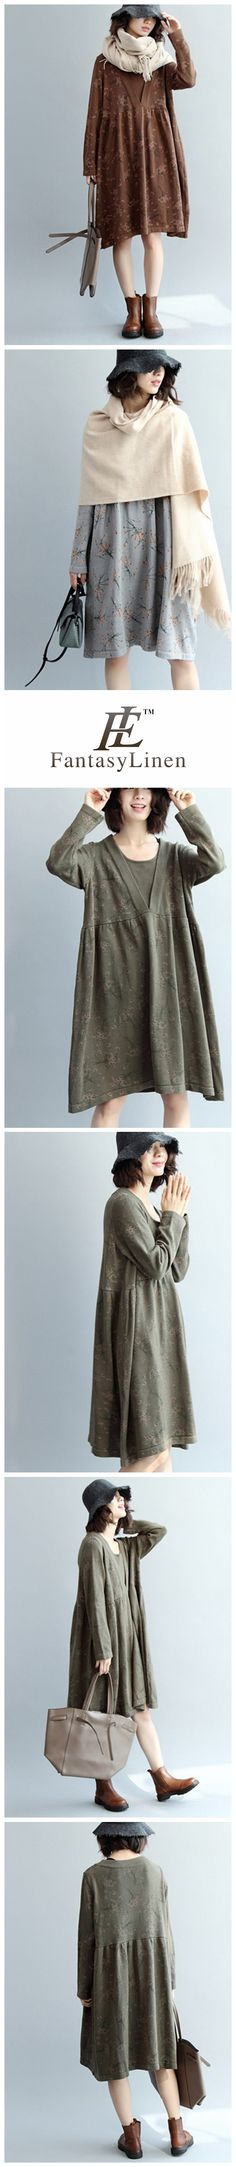 Women Loose Knitted Cotton Dress, Casual Long Sleeve Dress Q7100  Q7100ArmyGreen